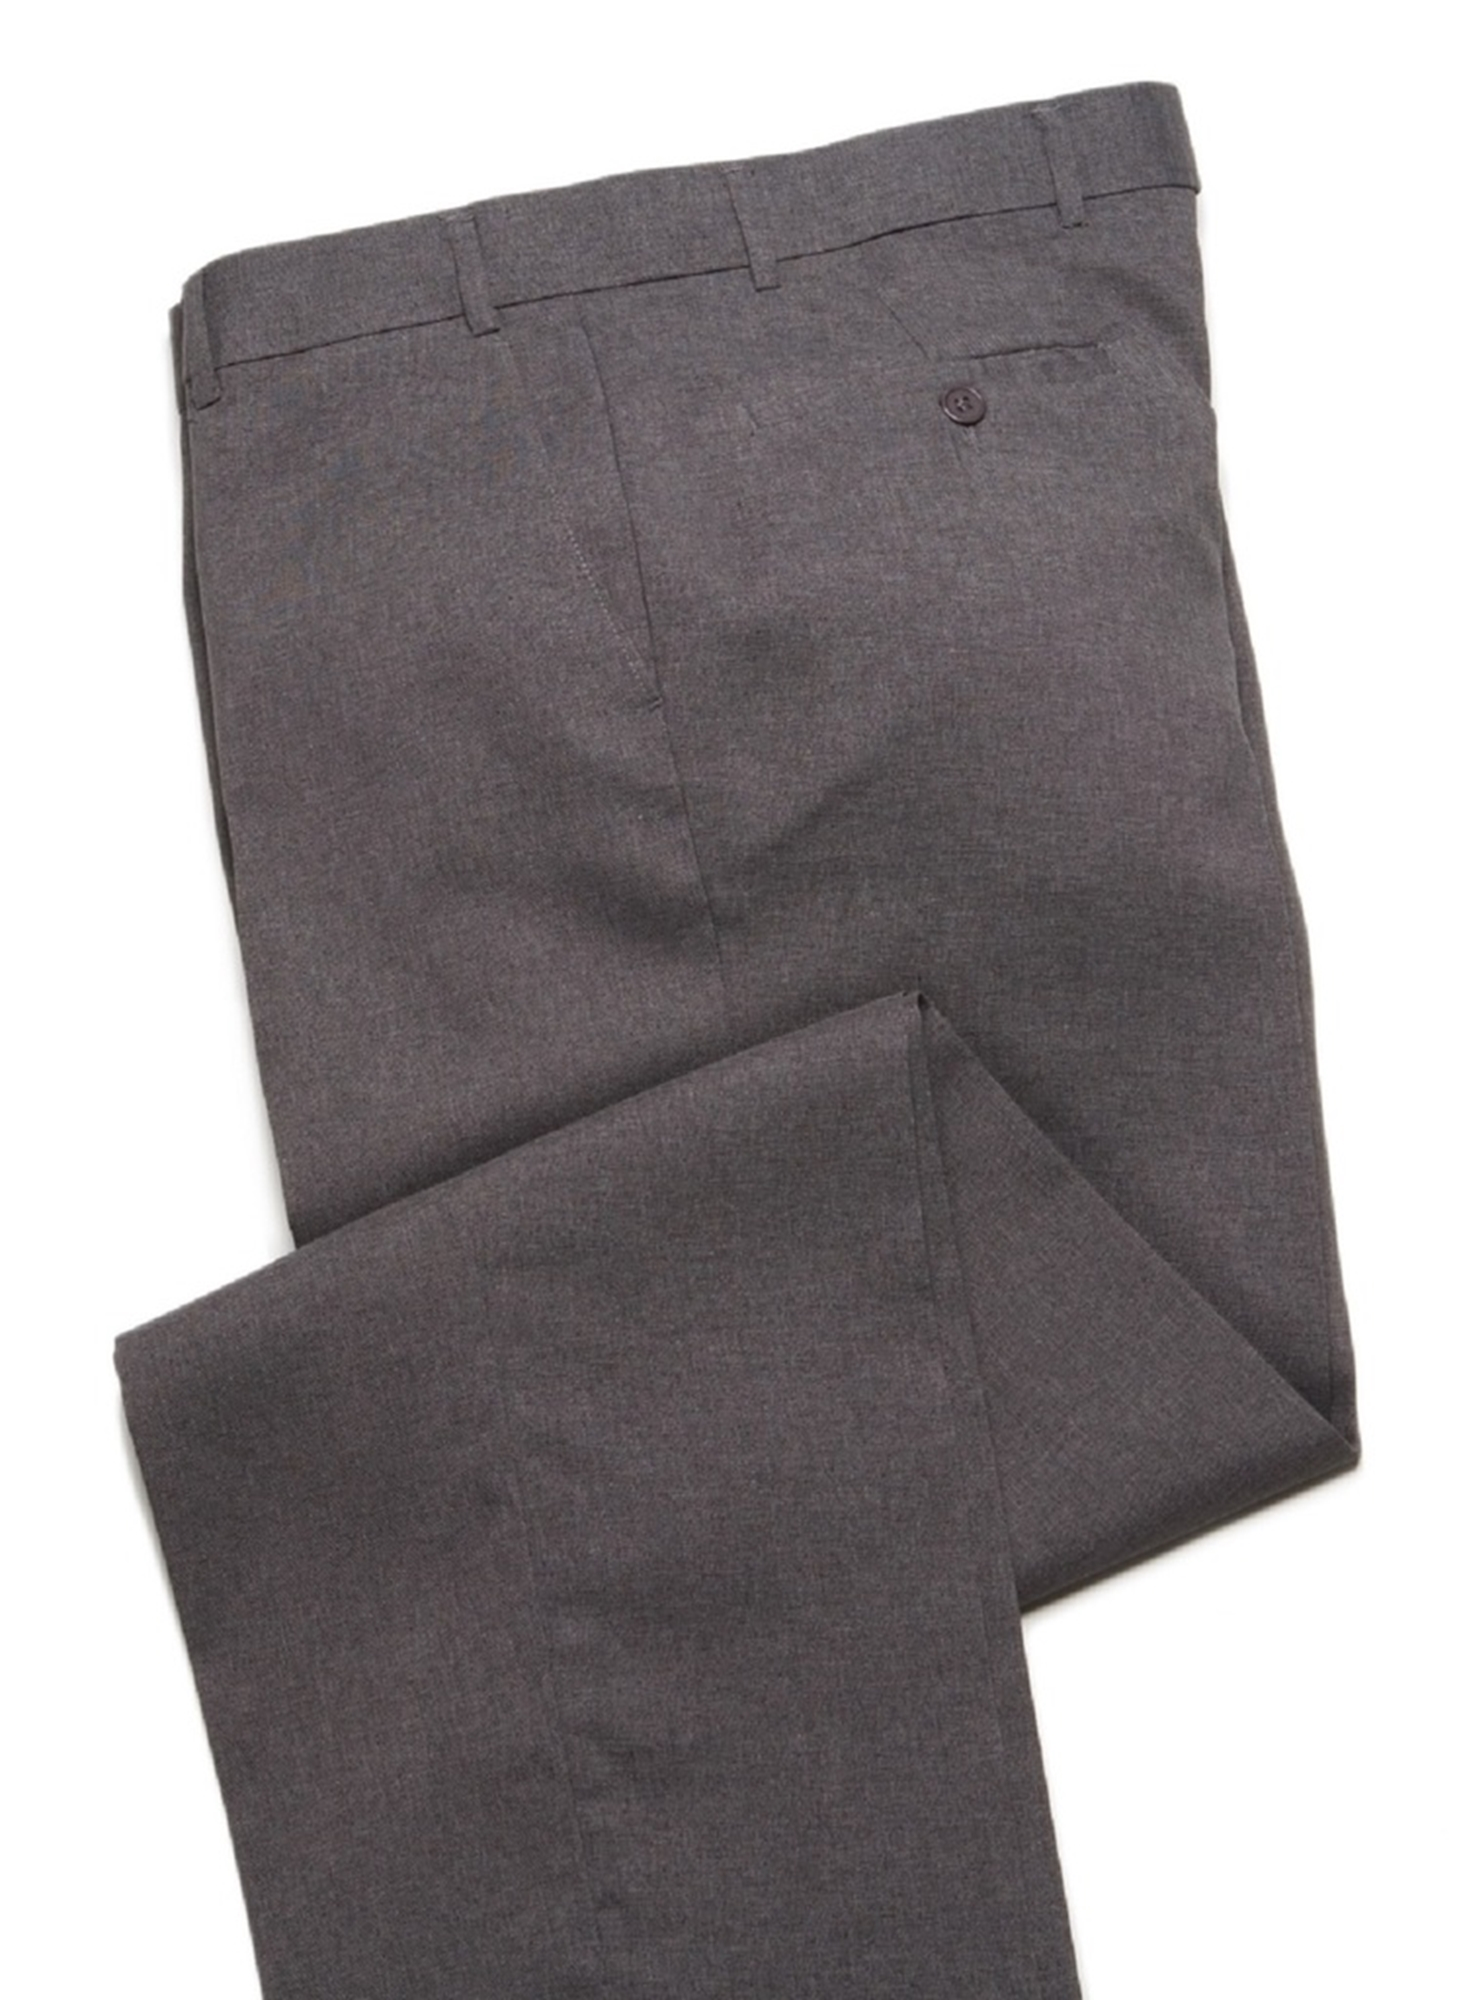 Breeches & Frock Wrinkle Resistant Mens Dress Pant Slack - Flat Front